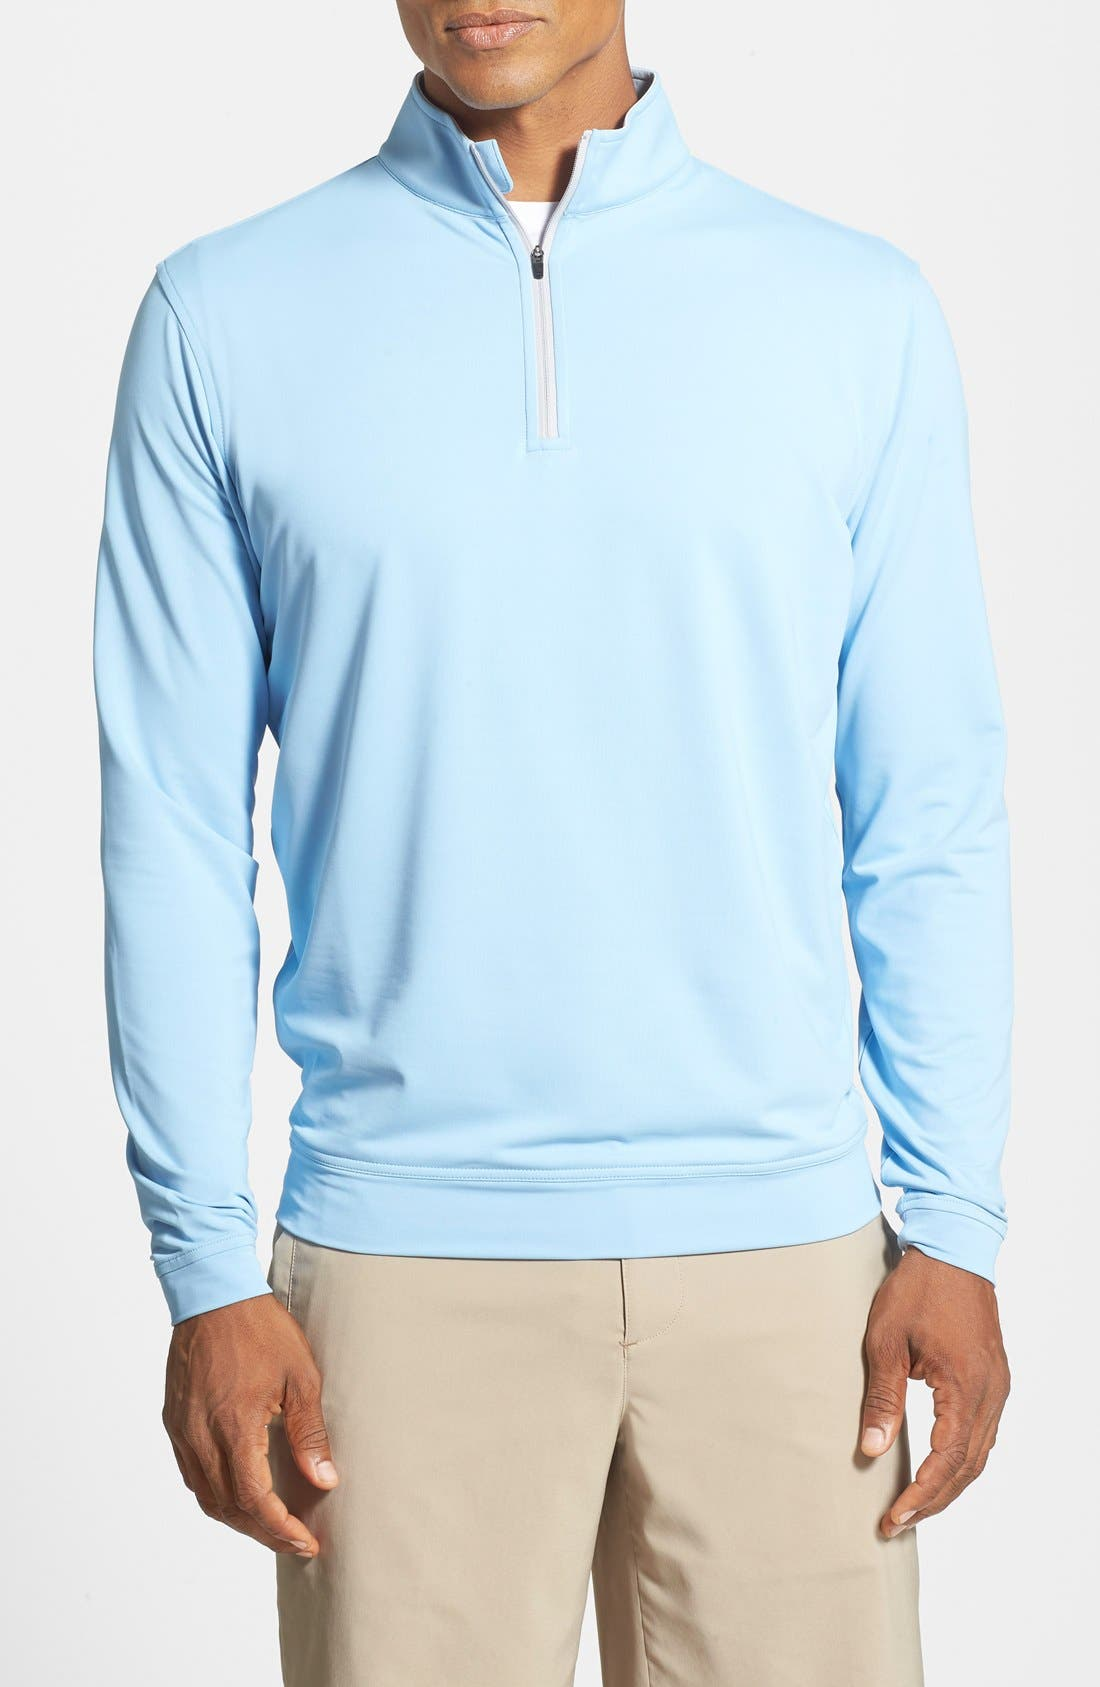 Alternate Image 1 Selected - Peter Millar 'Perth' Quarter Zip Pullover